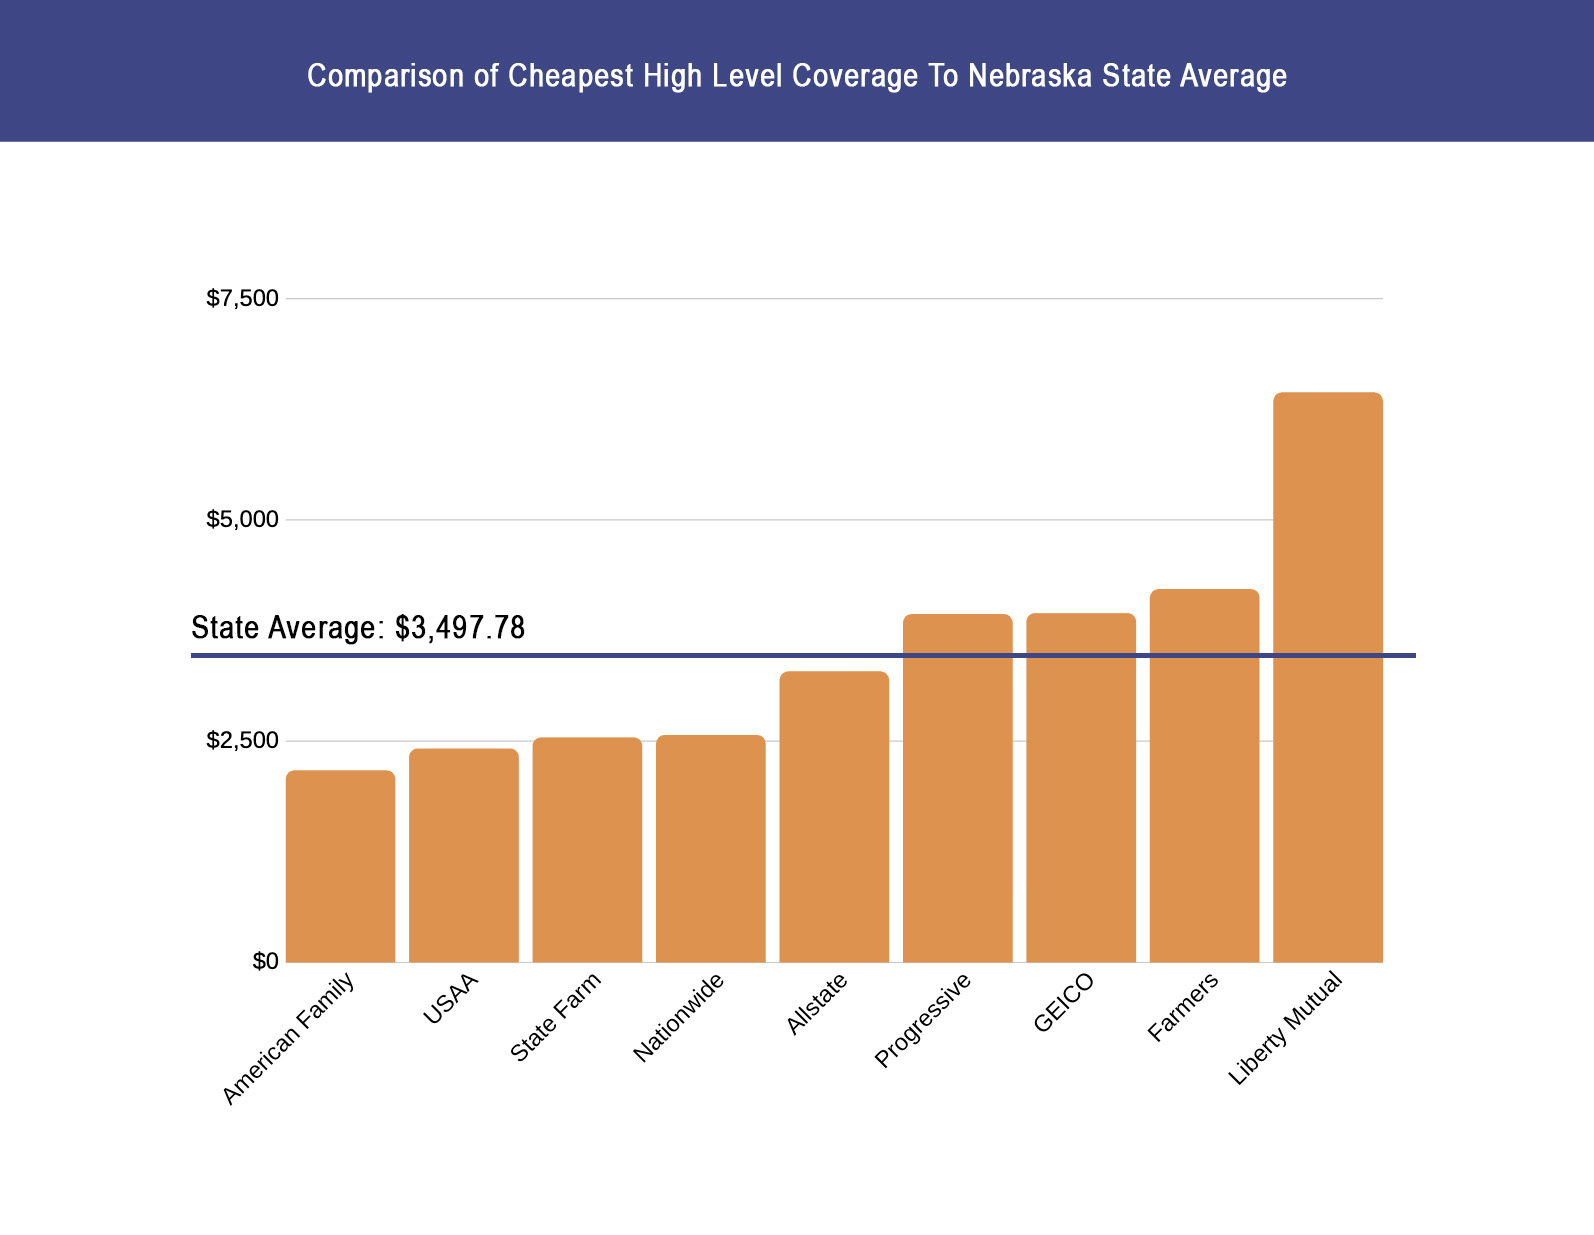 Comparison of Cheapest High Level Coverage To Nebraska State Average